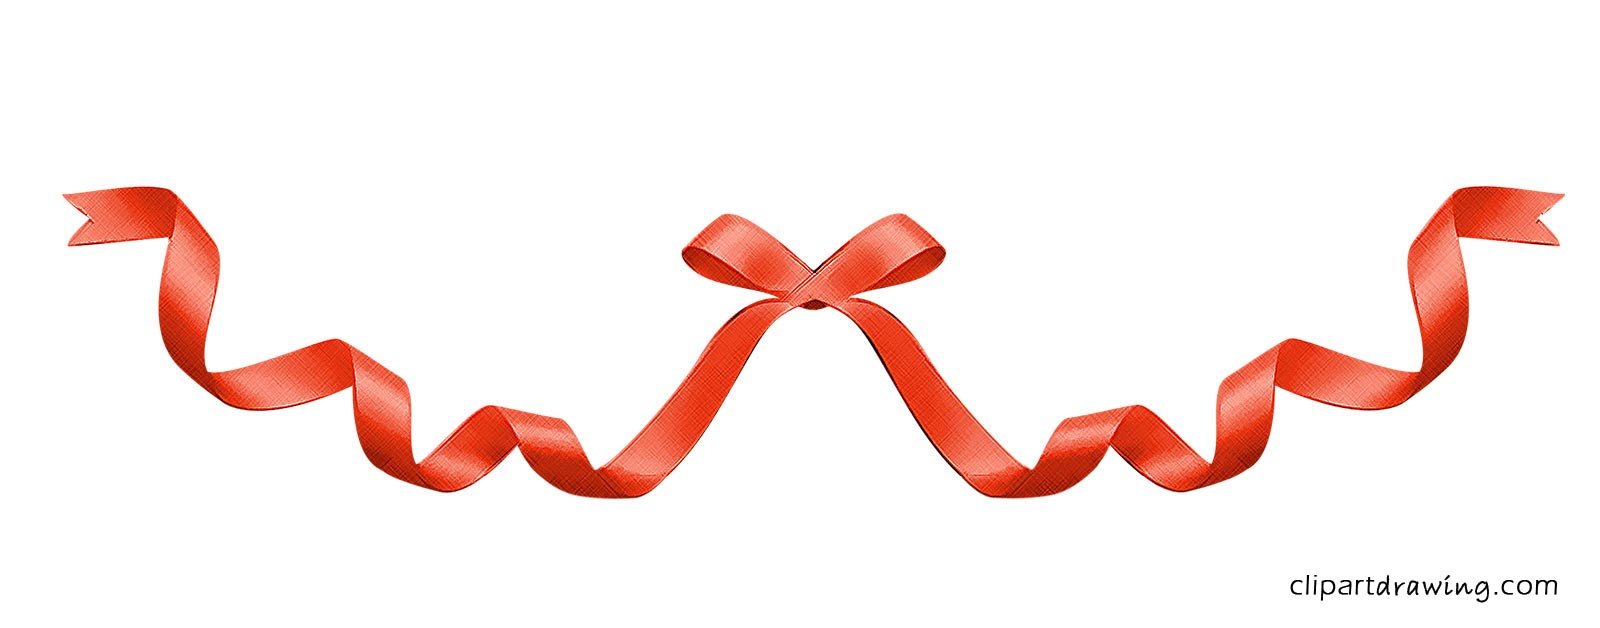 Clip art award ribbon free vector for free download about.